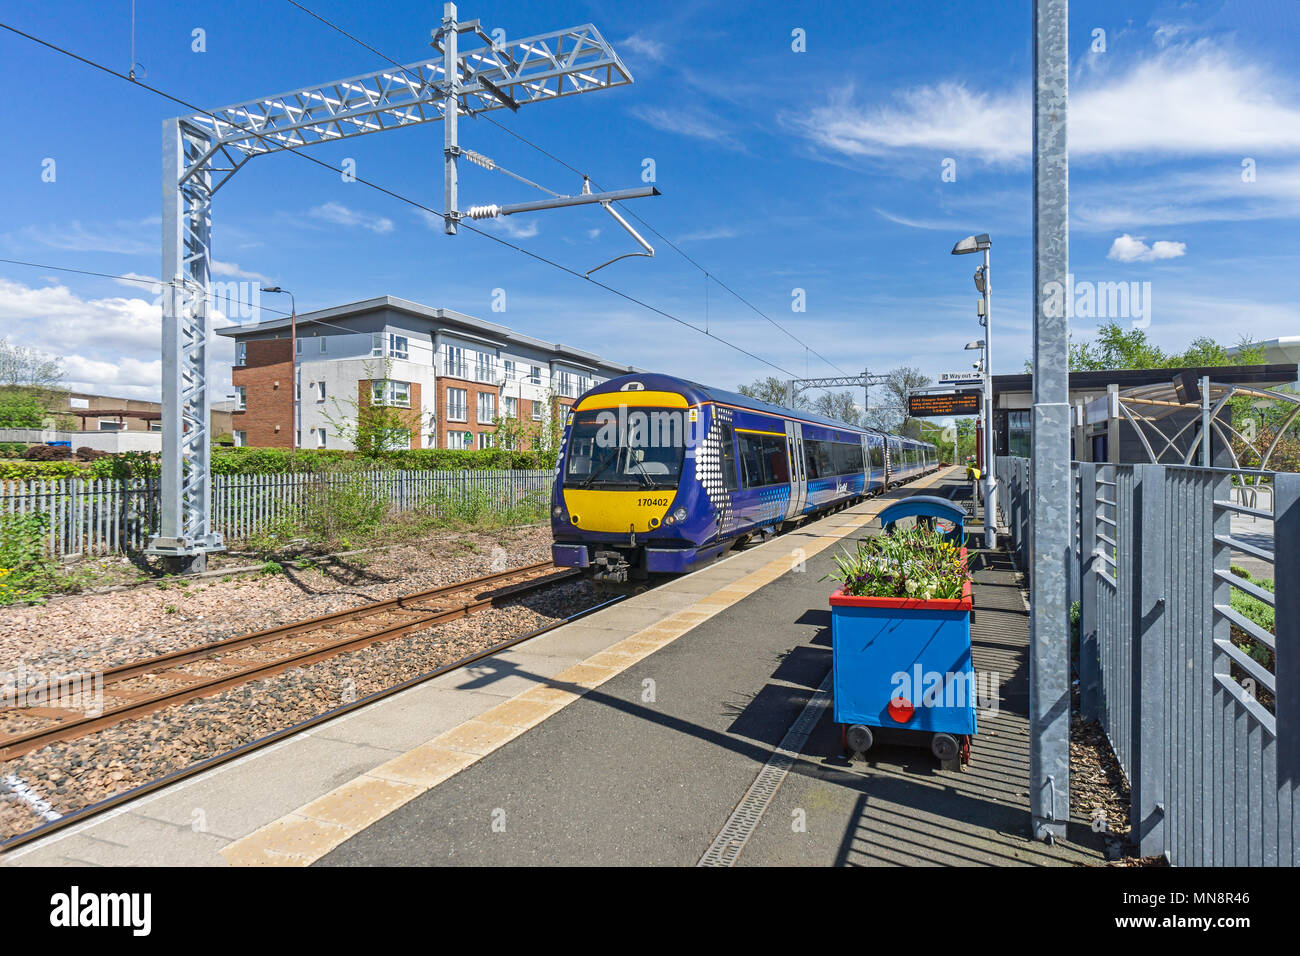 Class 170 DMU at Scotrail railway station in Alloa Clackmannanshire Scotland UK - Stock Image